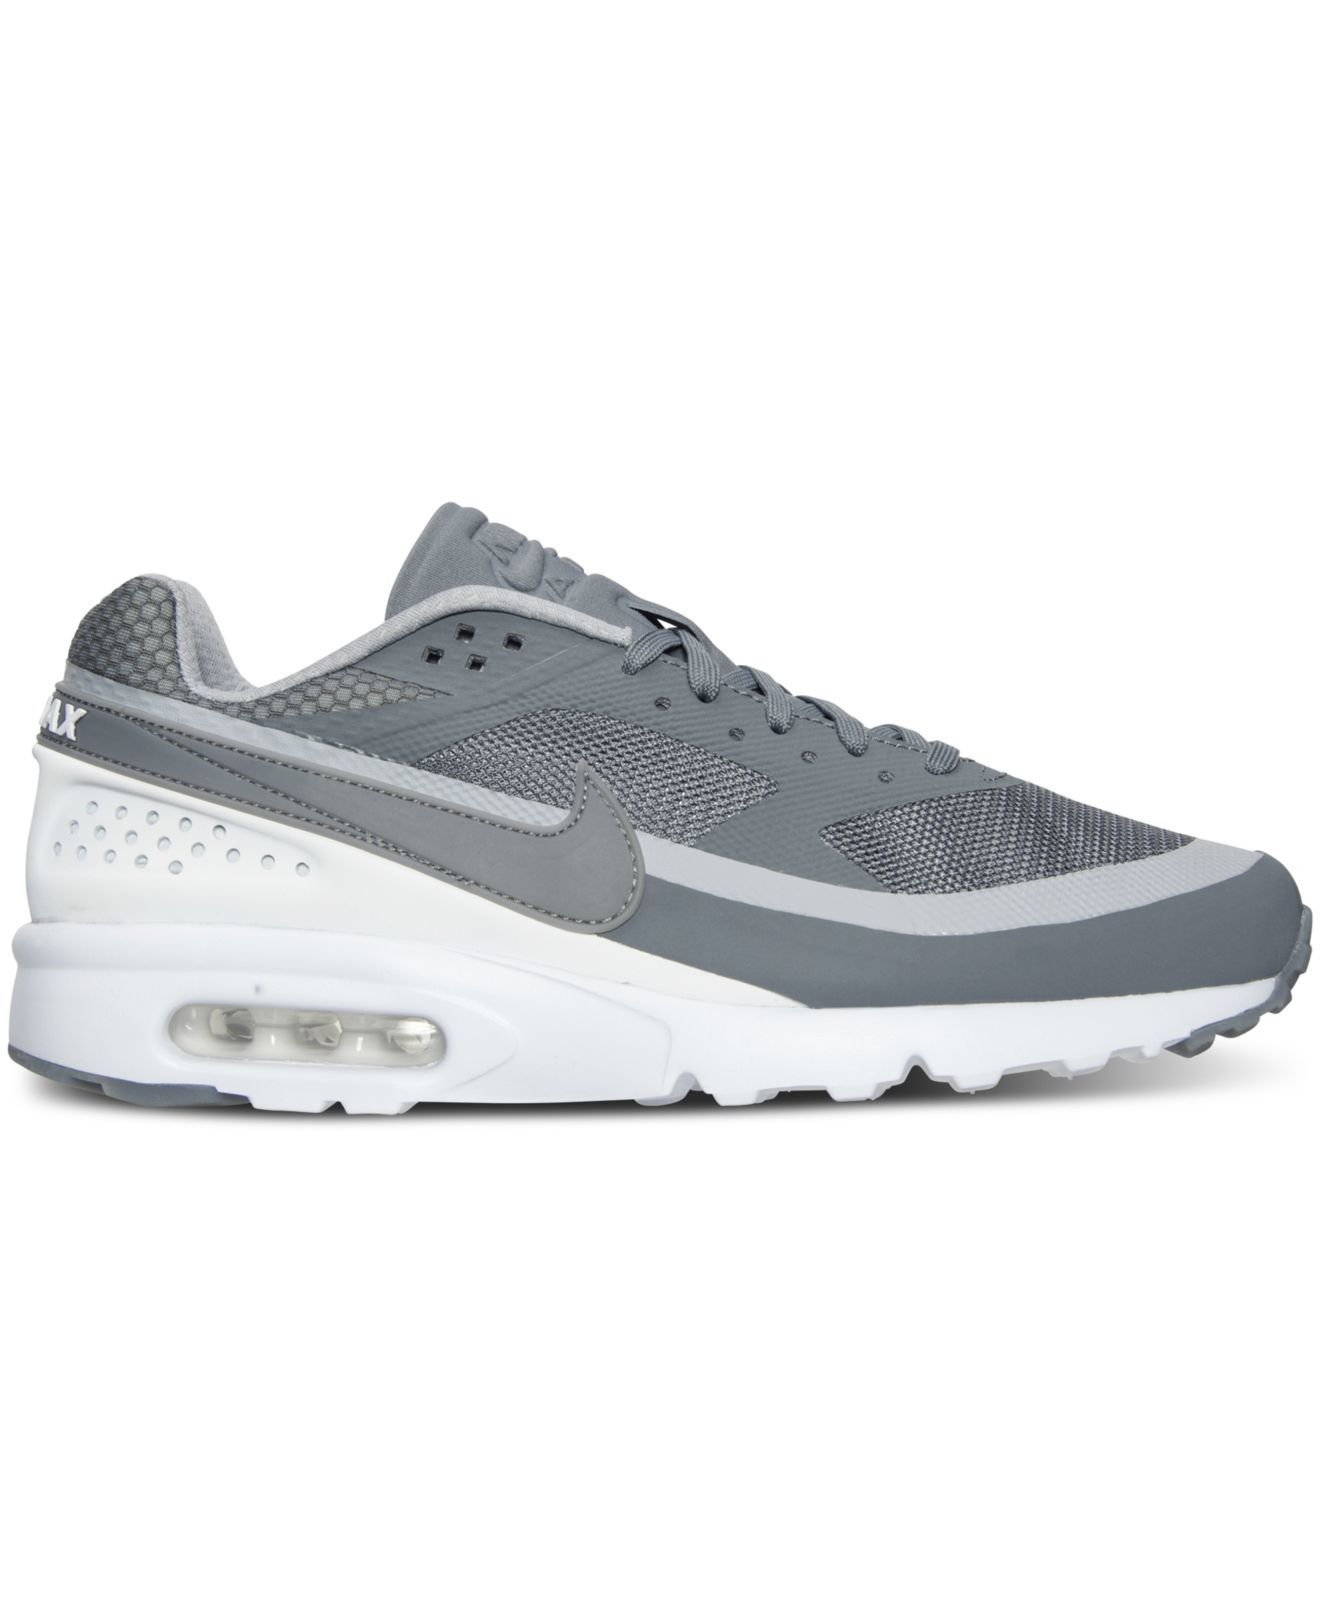 b85c1957608c ... cheapest lyst nike mens air max bw ultra running sneakers from finish  line 381e5 51f29